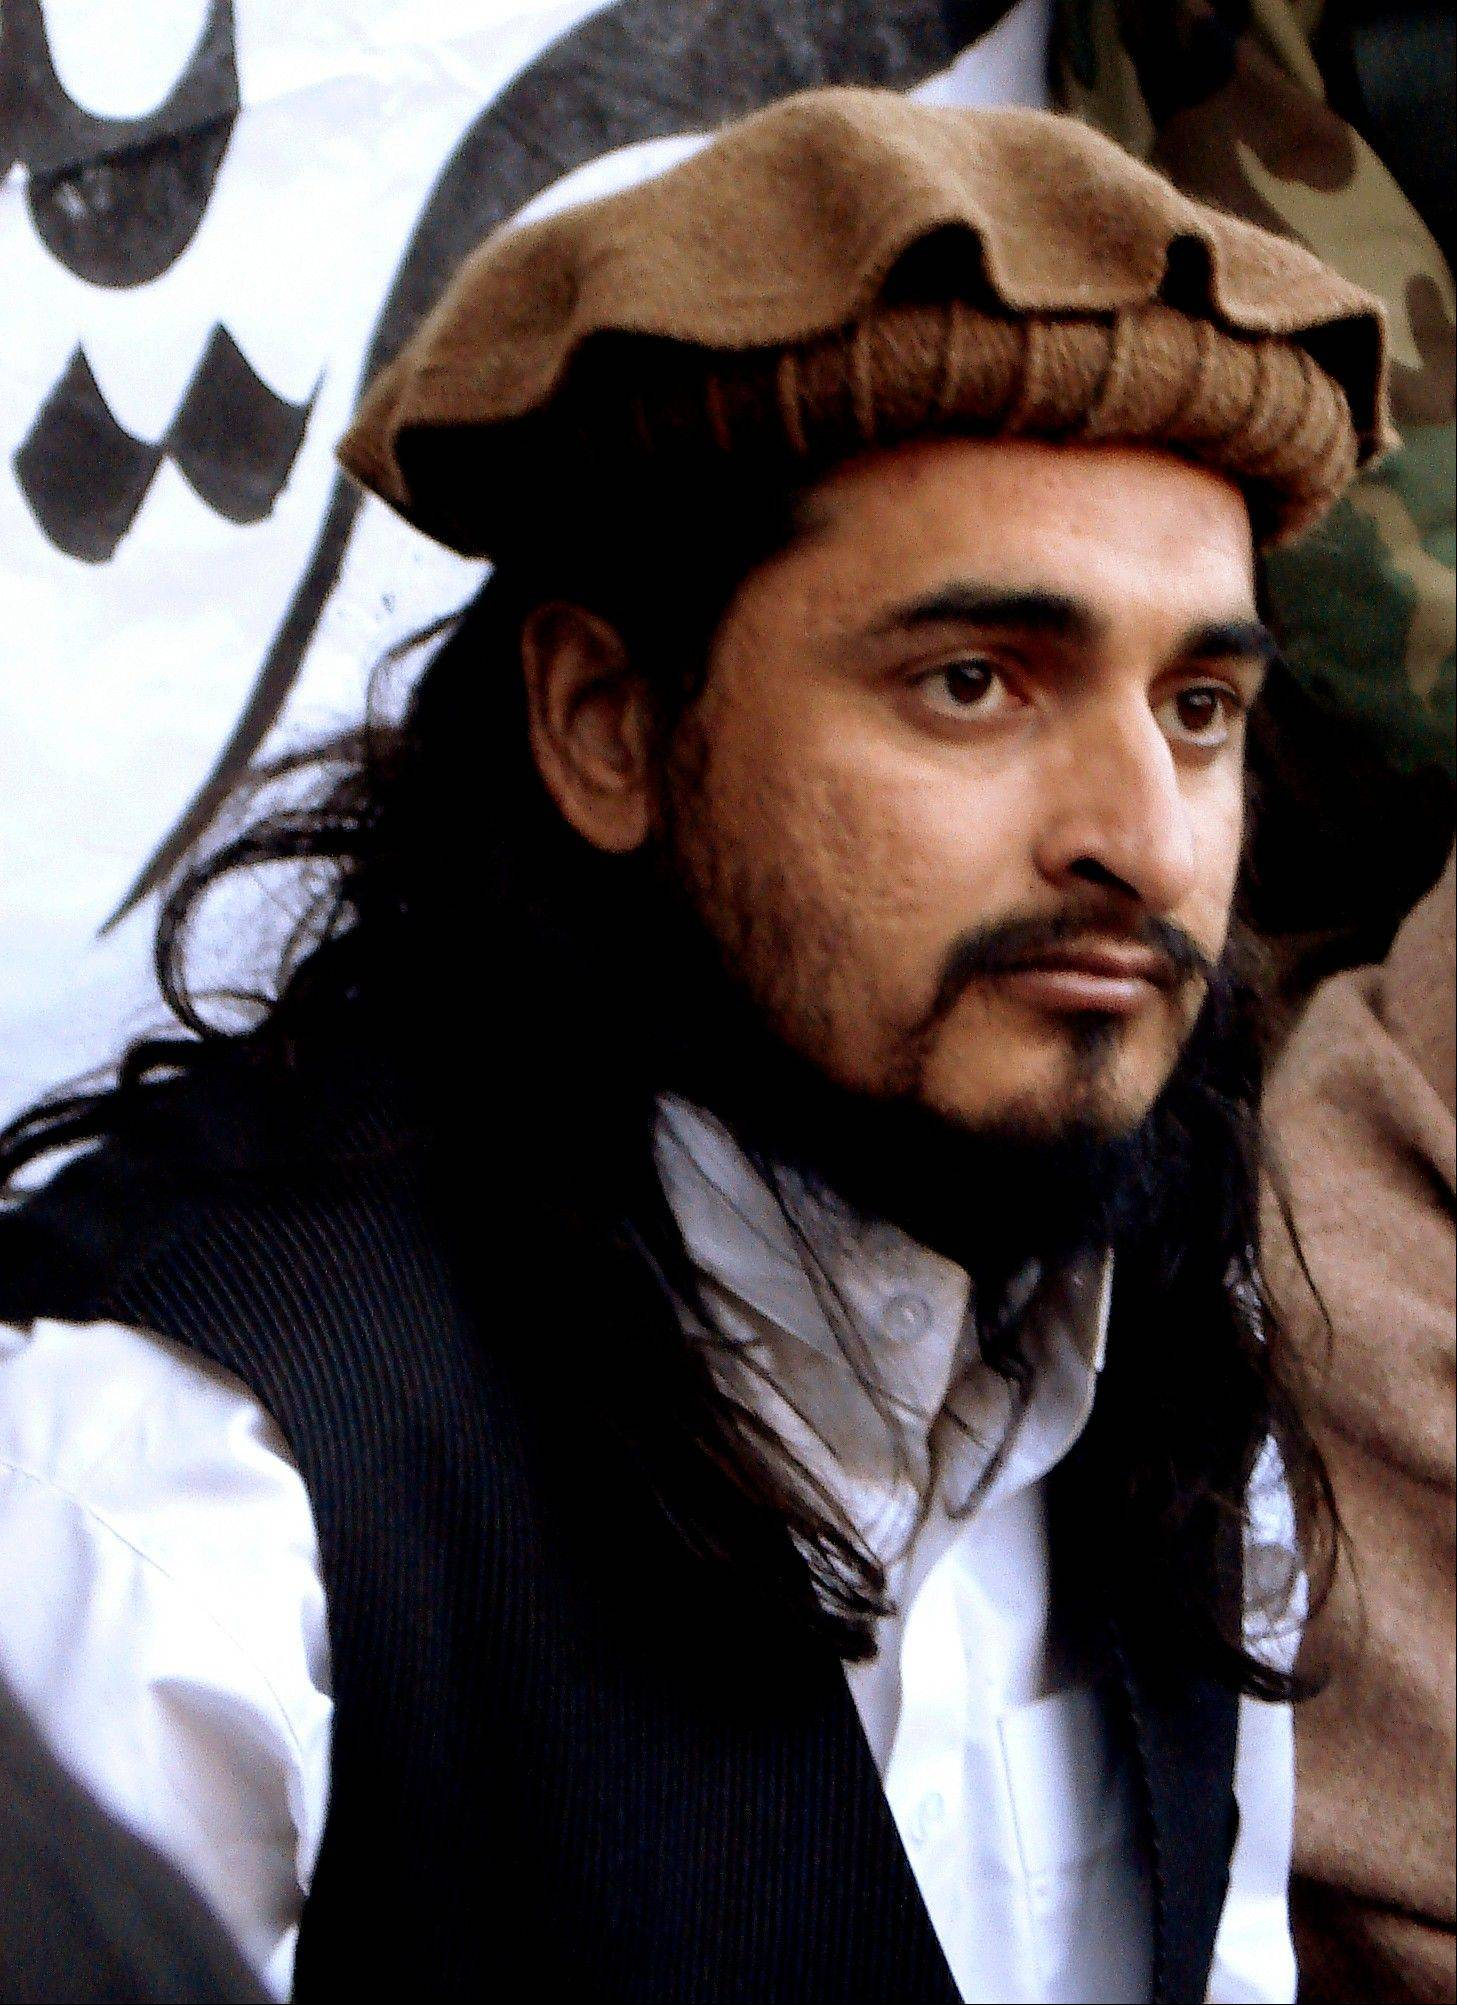 Hakimullah Mehsud, the leader of Pakistani Taliban faction after death of Baitullah Mehsud. Intelligence officials say the leader of the Pakistani Taliban, Hakimullah Mehsud was one of three people killed in a U.S. drone strike.